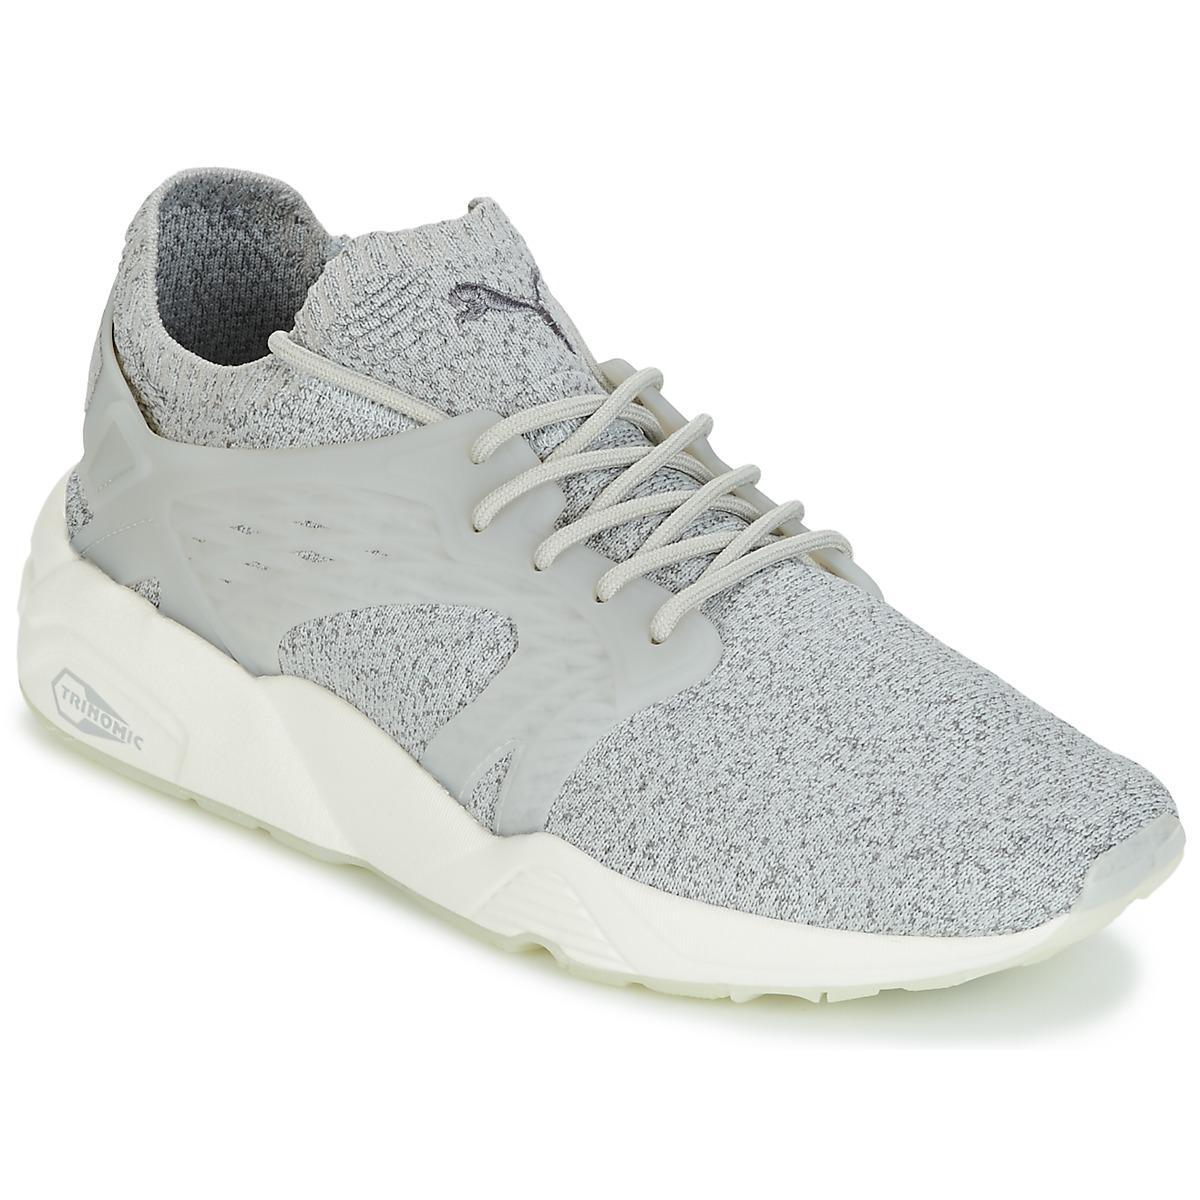 48e2b5c48c36 Puma Blaze Cage Evoknit Men s Shoes (trainers) In Grey in Gray for ...